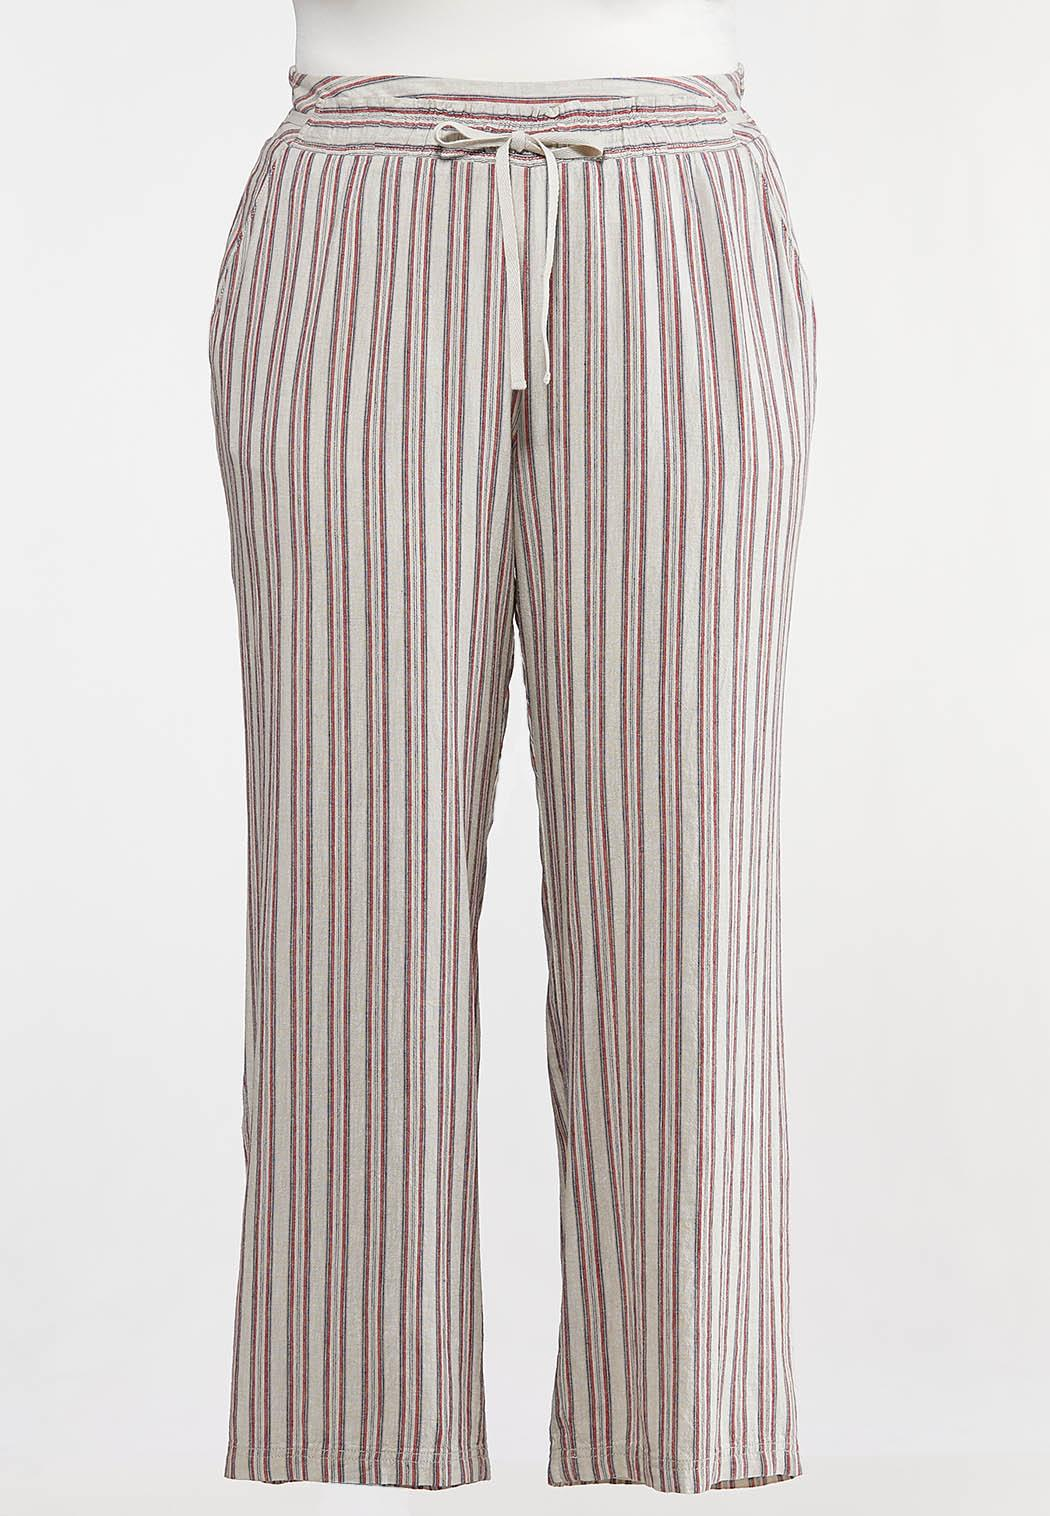 Plus Size Americana Striped Pants